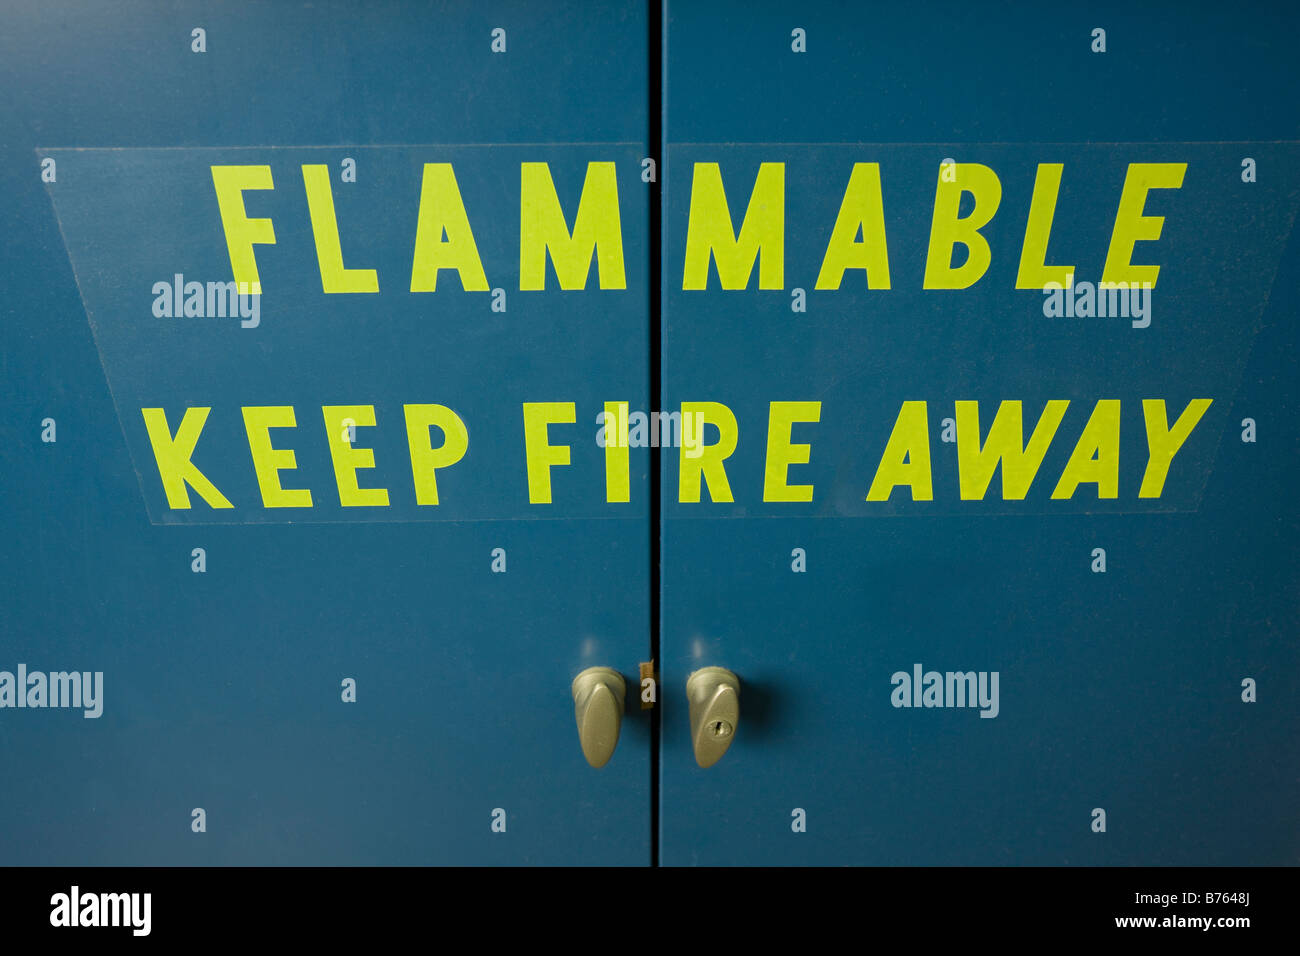 Weaning on ventilated flammable cabinet door - Stock Image